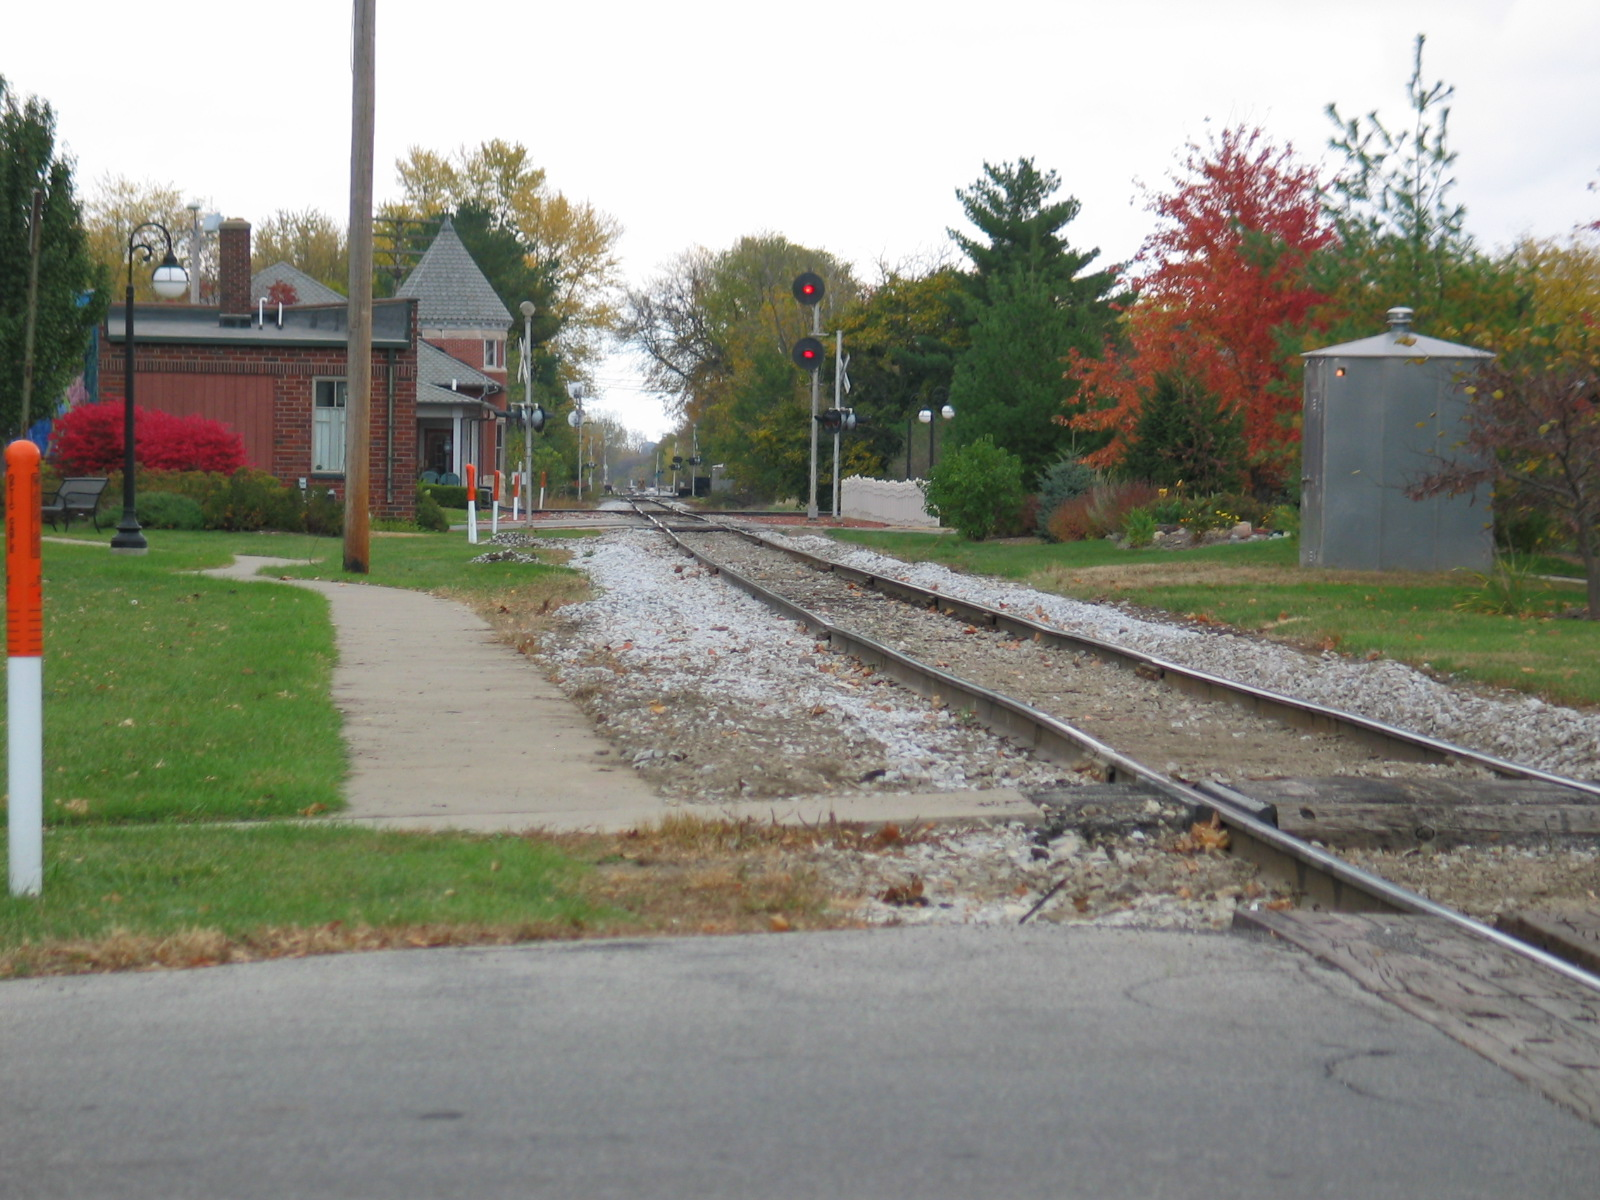 Eastbound home signal at Grinnell, Oct. 24, 2005.